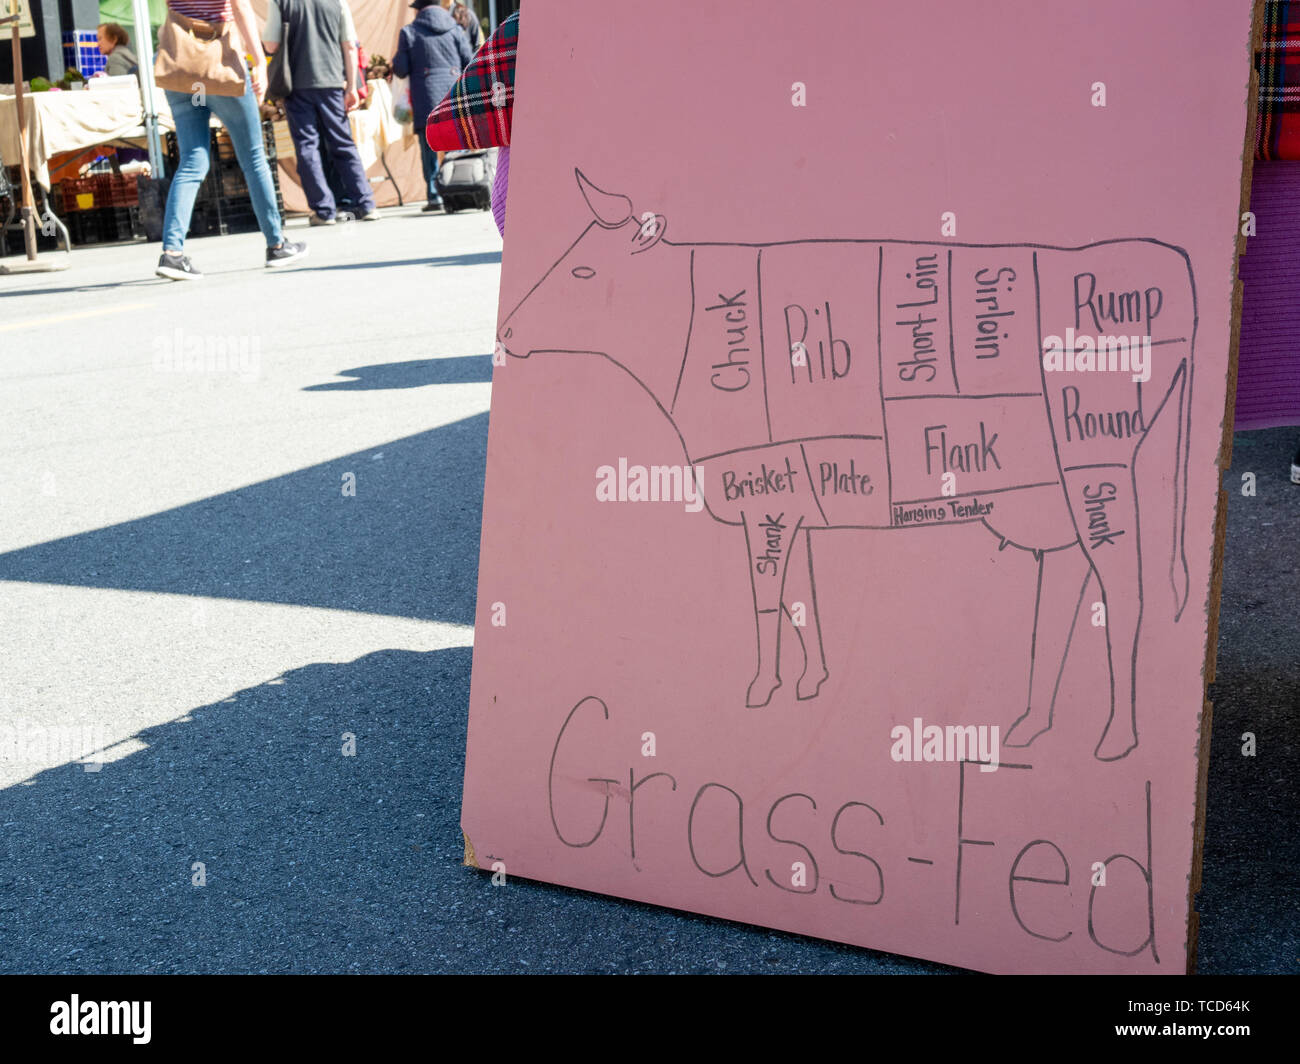 Hand drawn cuts of beef chart on grass fed posted sign outdoors at market - Stock Image